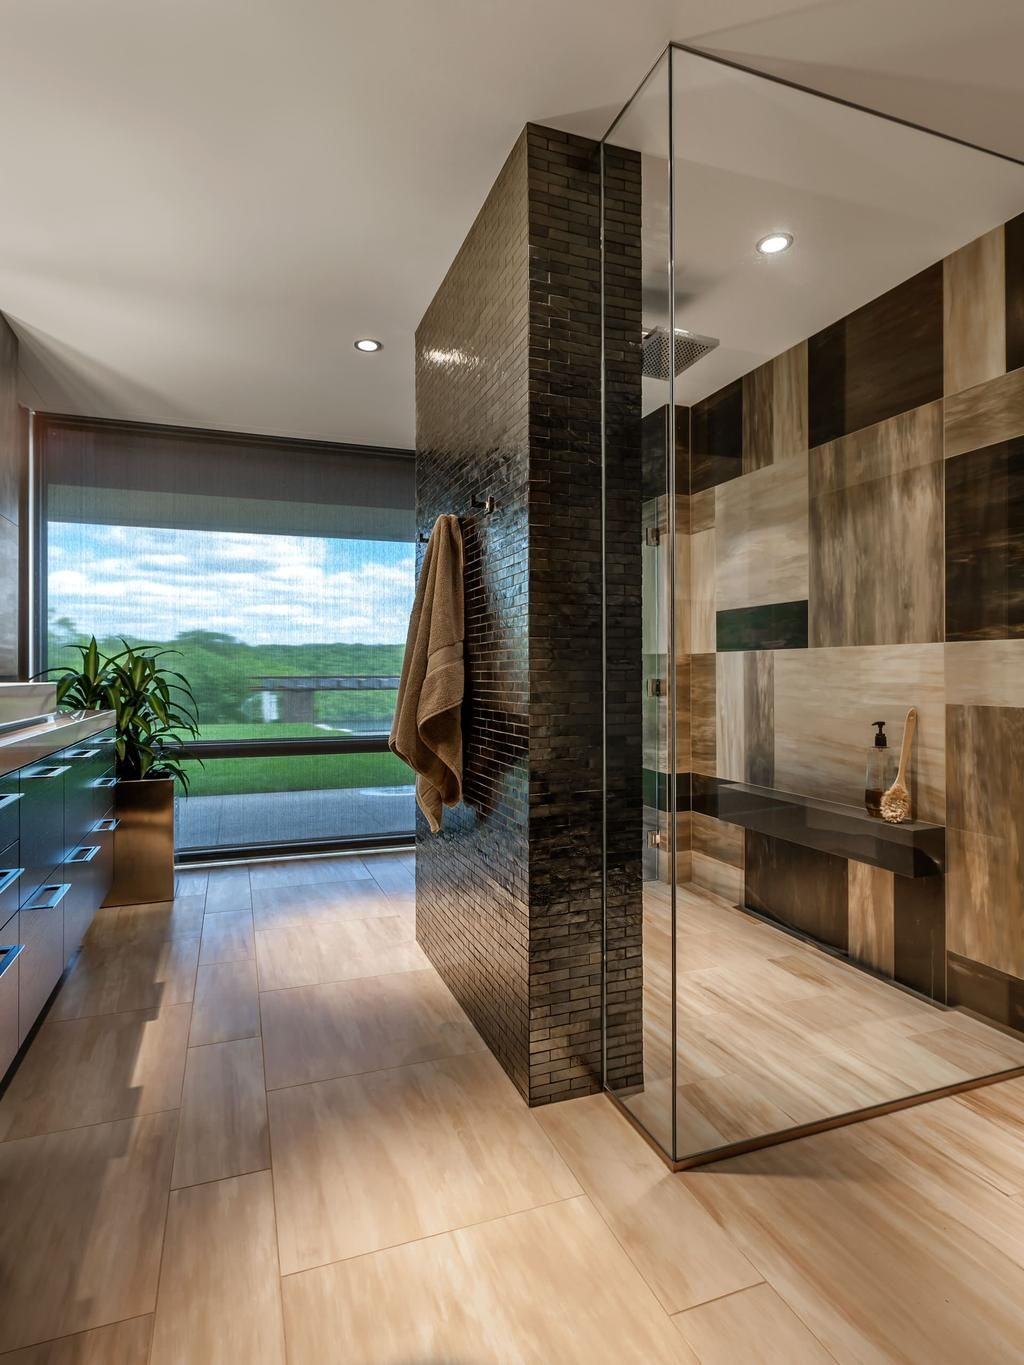 Stunning Bathroom With A Large Walk In Shower Surrounded By Black Glass  Tile.